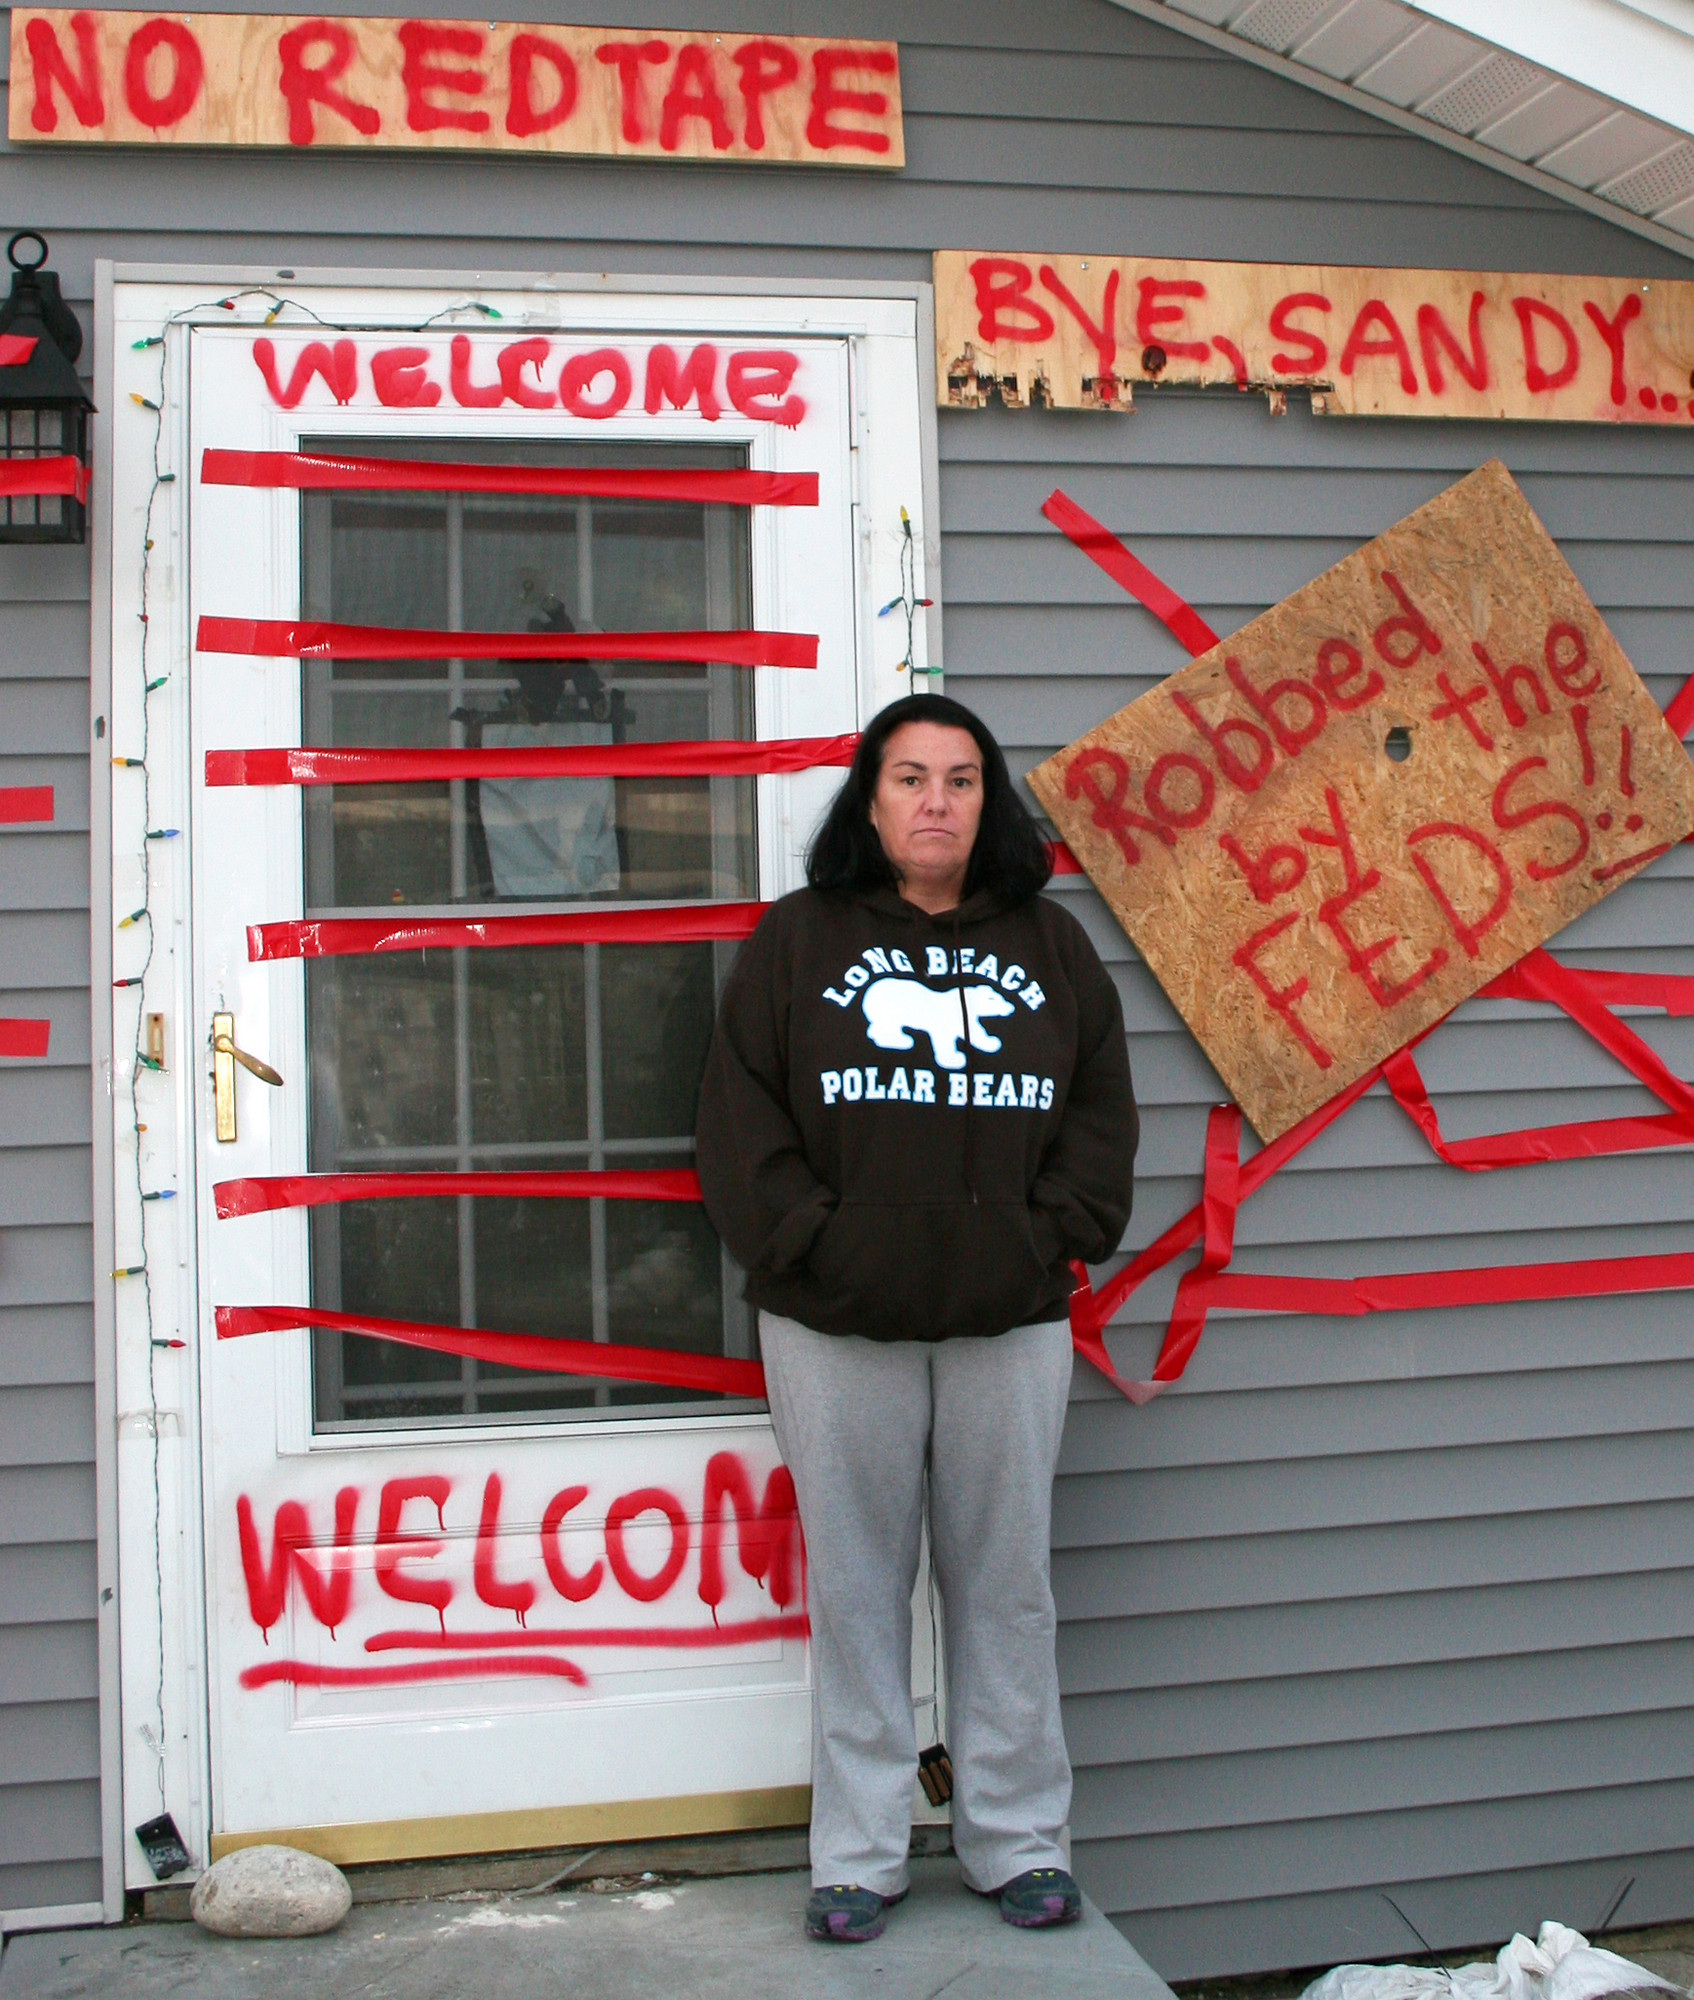 Sam Kinsley said she is waiting for money to rebuild her home, after building inspectors told her that 77 percent of the house was damaged.